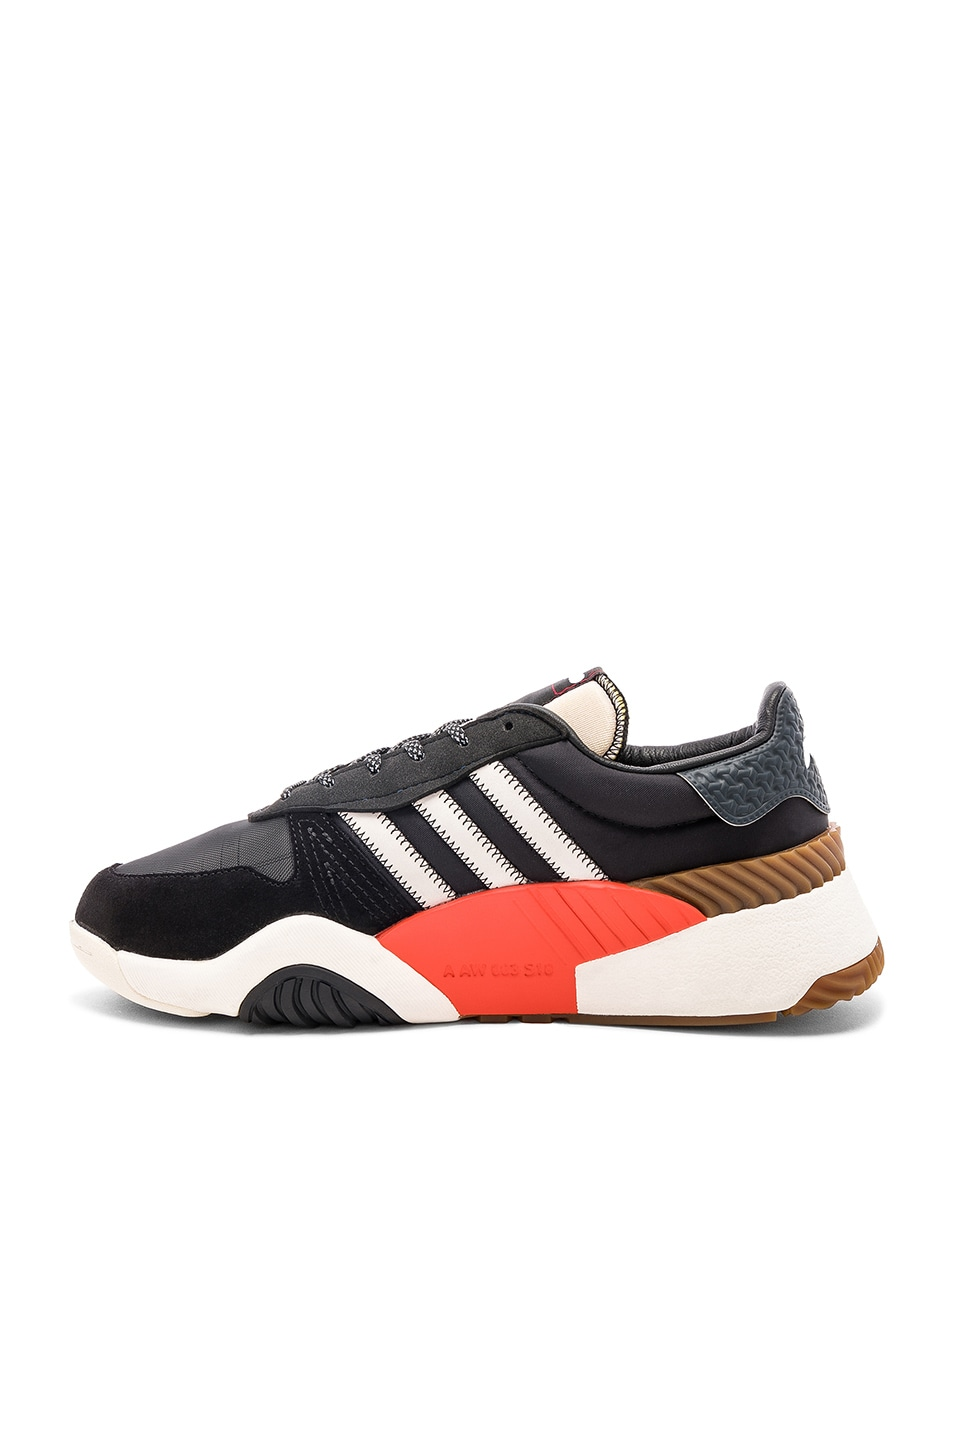 Image 5 of adidas by Alexander Wang Trainers in Core Black & Core White & Borang